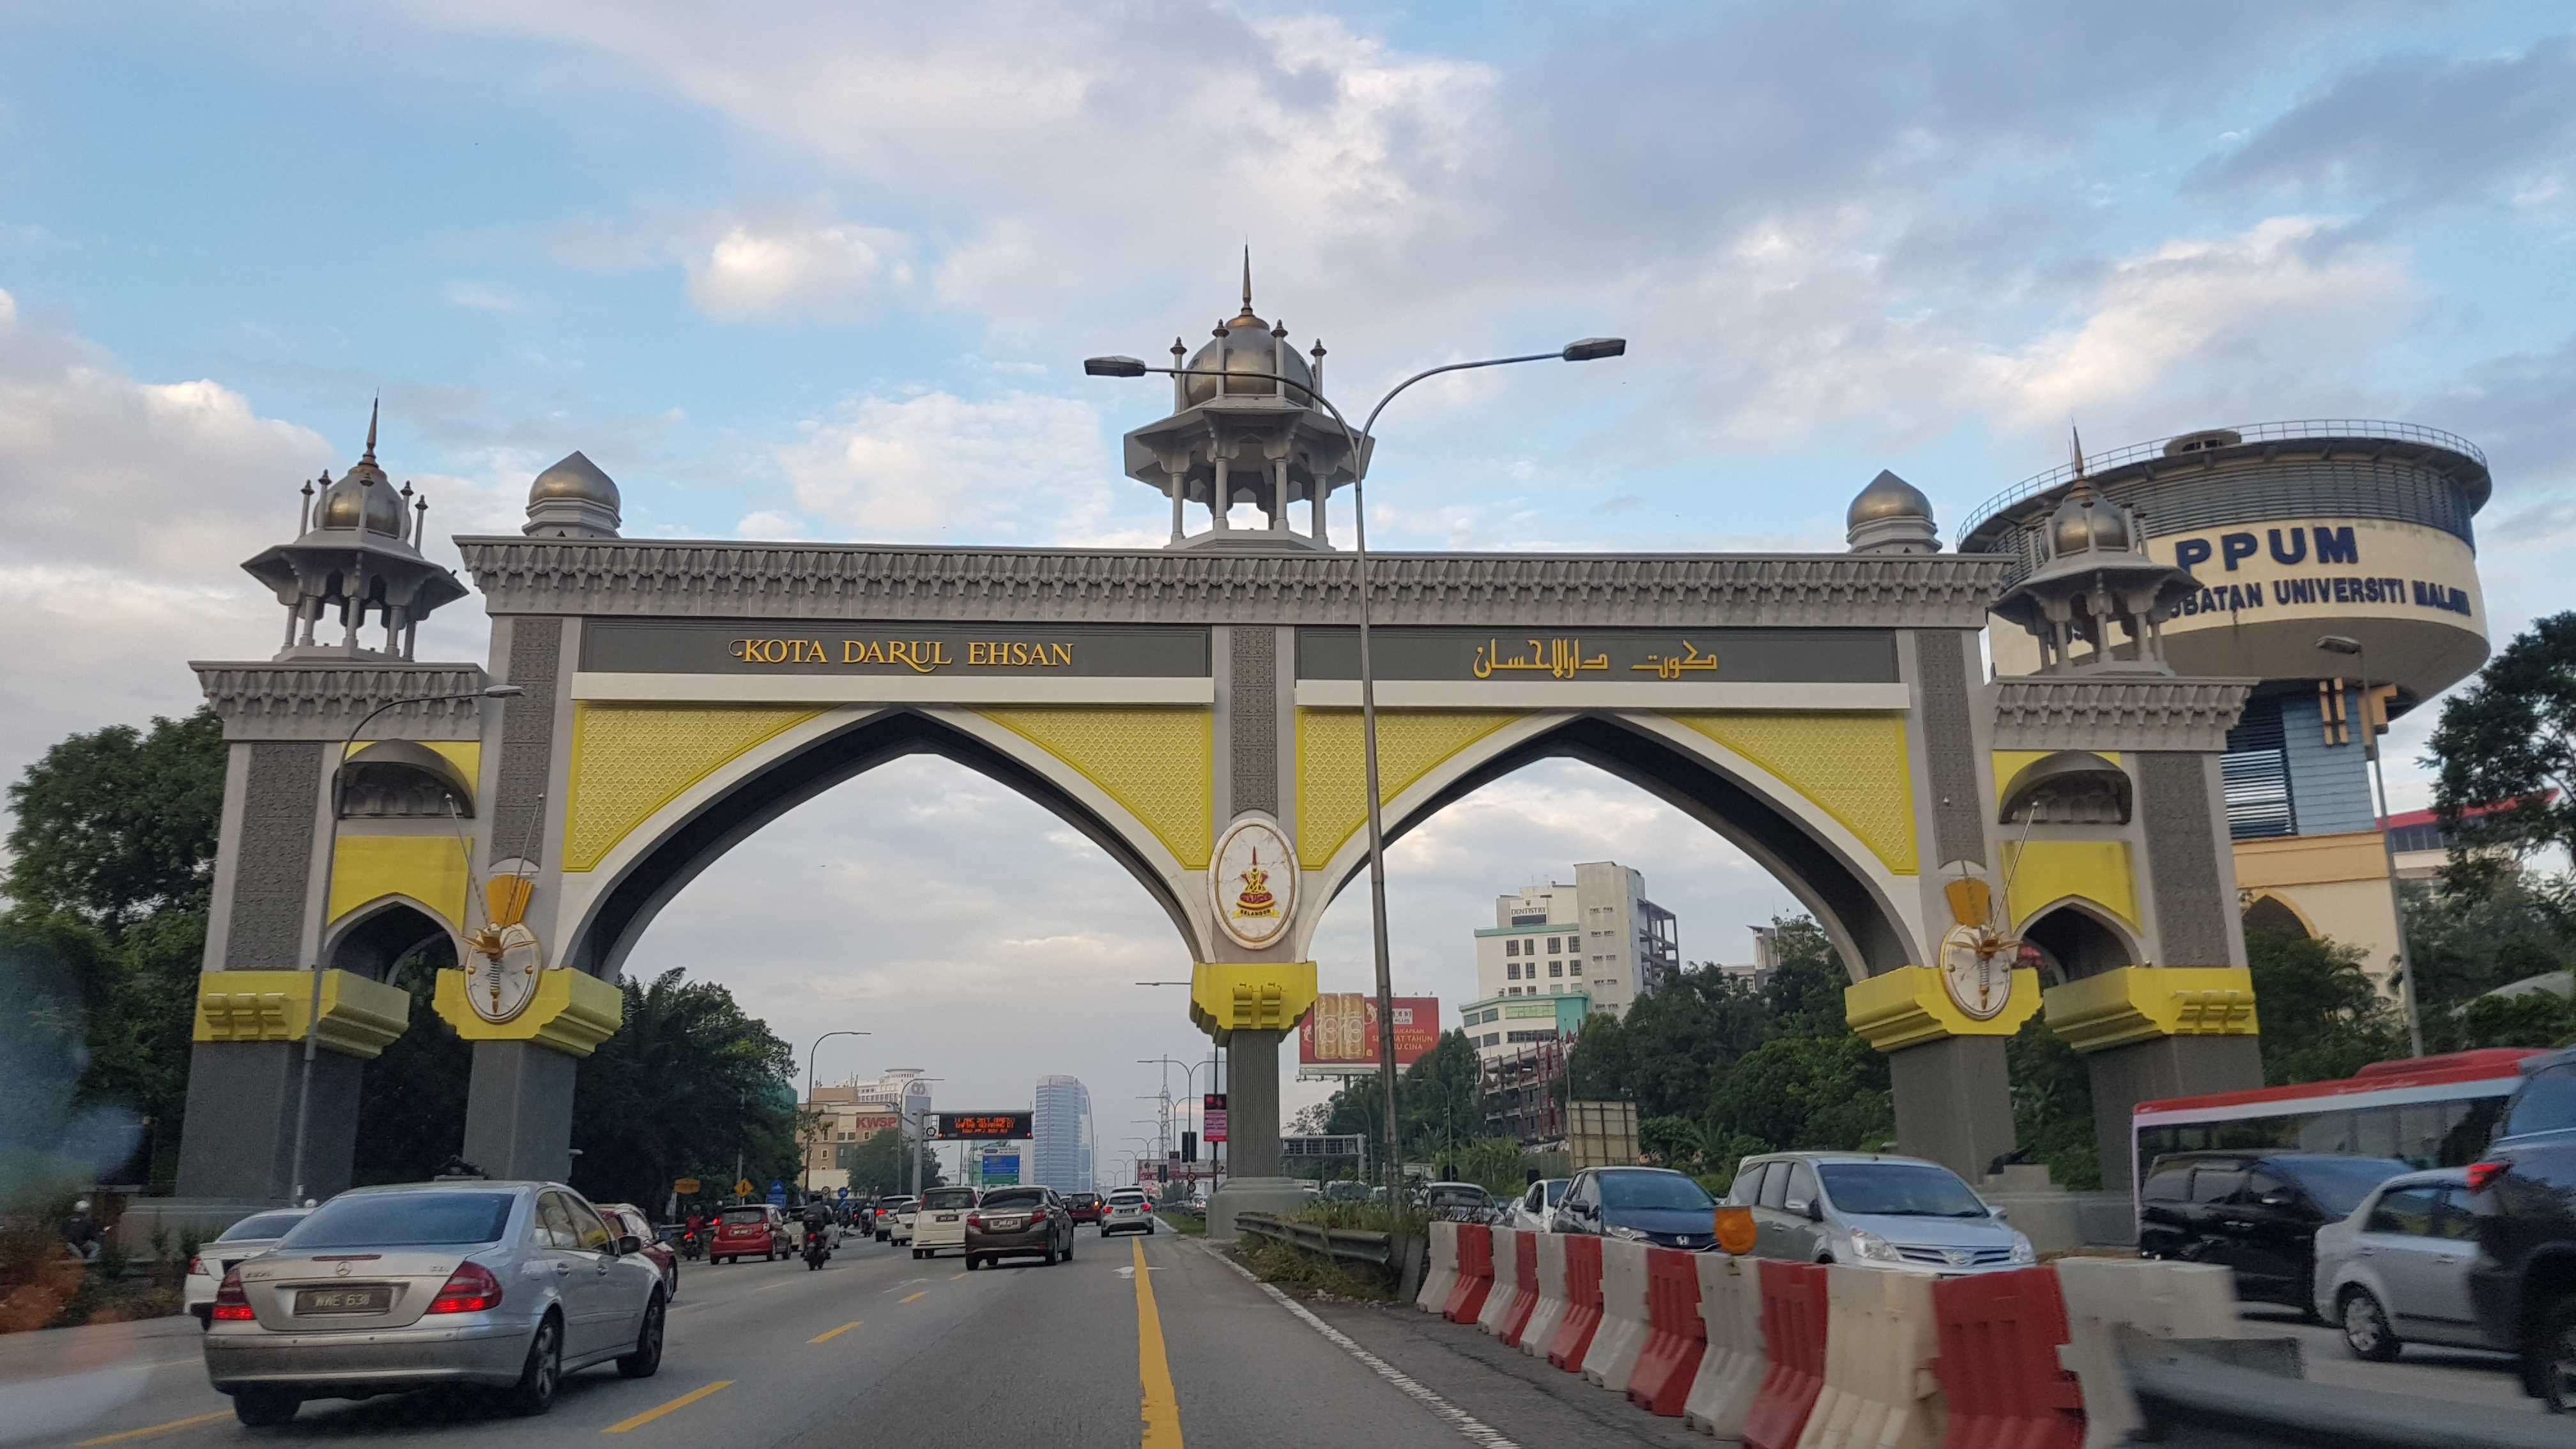 Image from Tourism Selangor